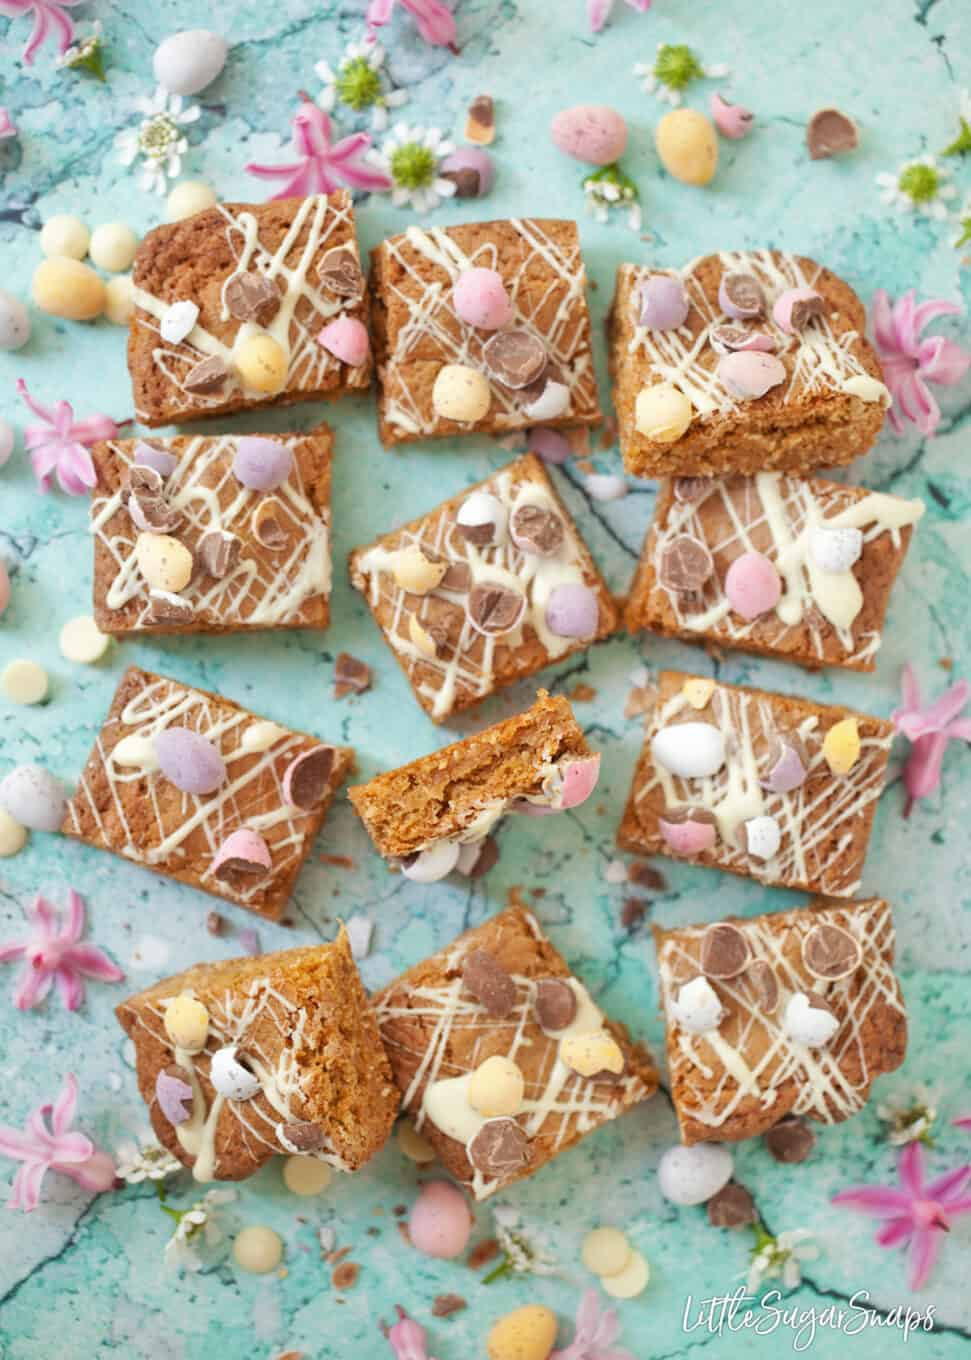 12 squares of Easter blondies topped with mini eggs and white white chocolate on a blue worktop. A few pink flowers, mini eggs and chocolate chips in shot